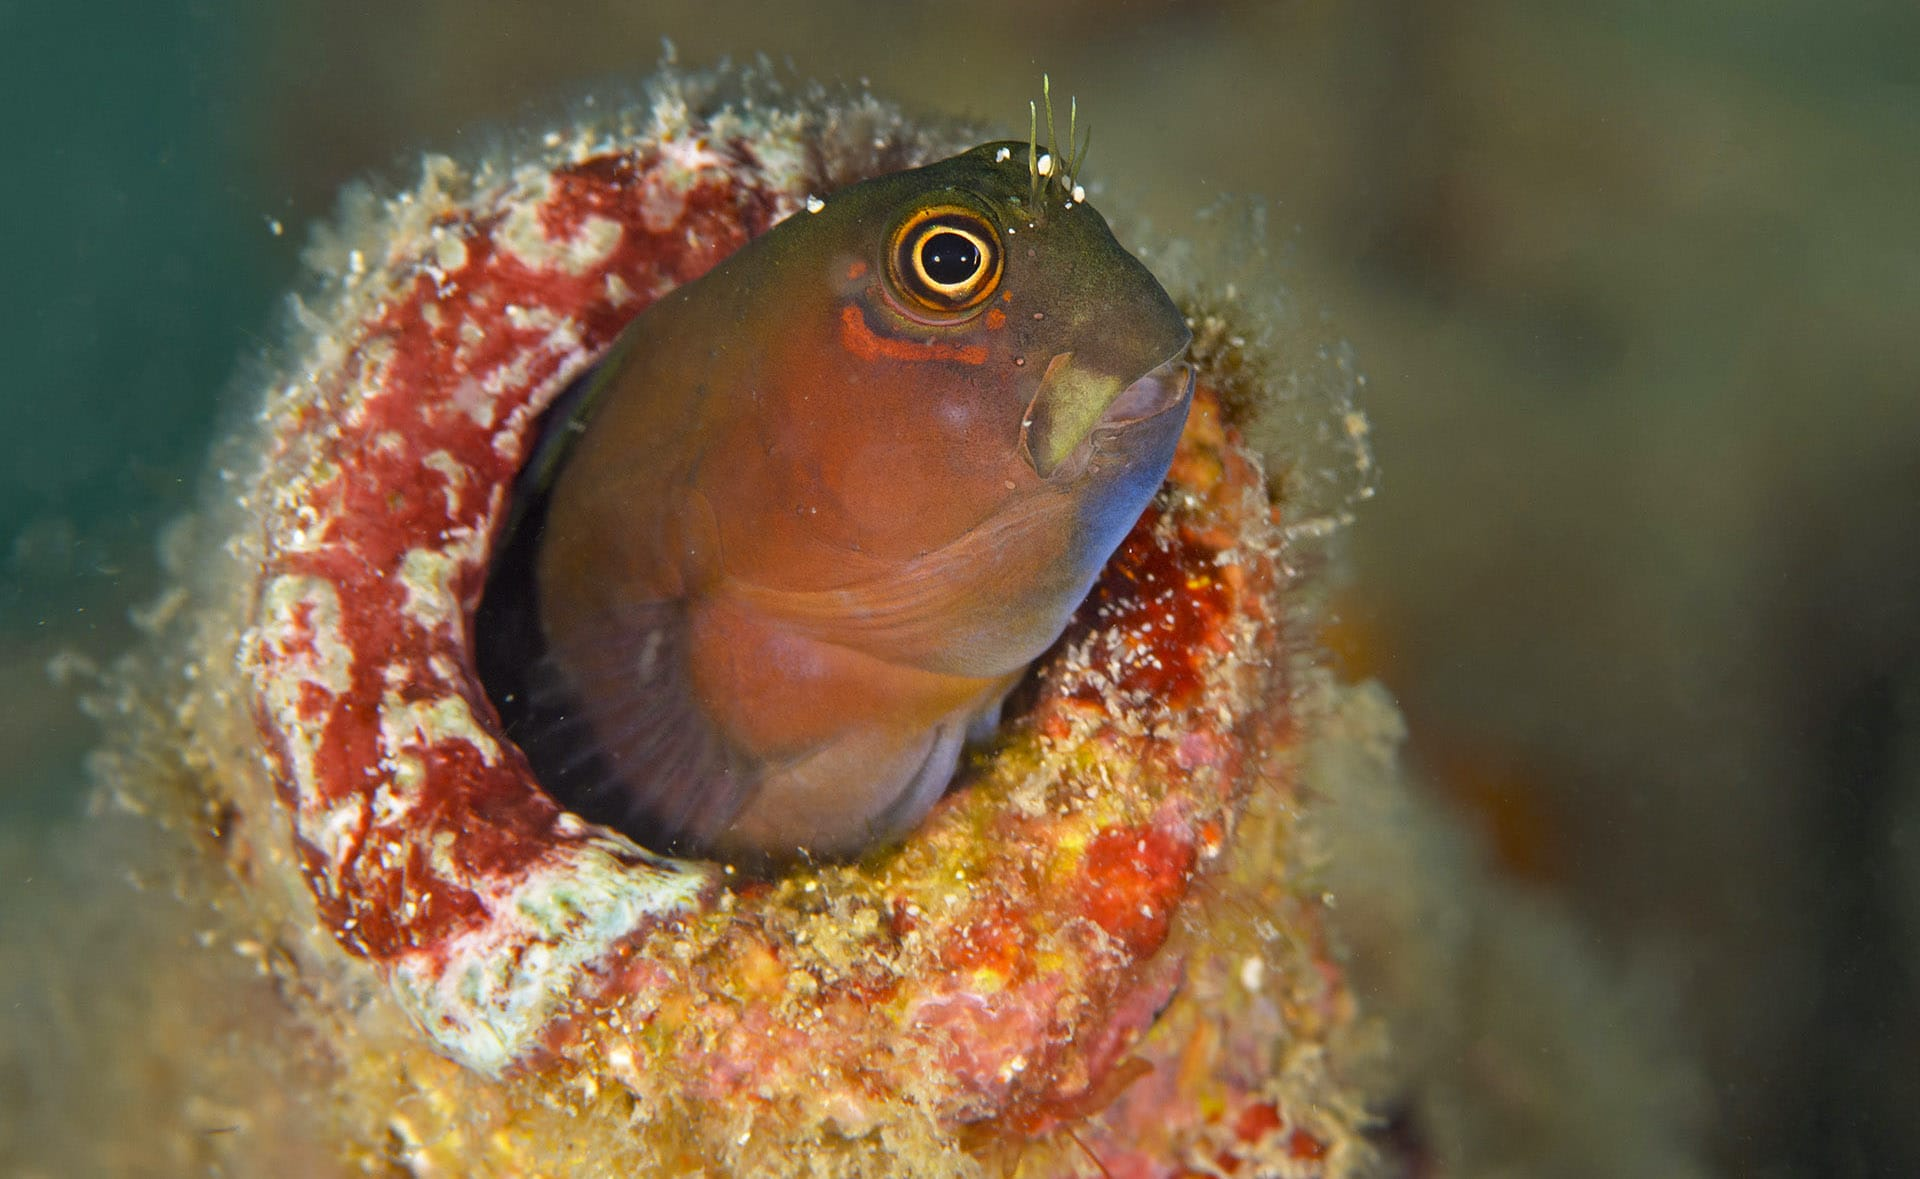 blenny-peeping-from-burrow